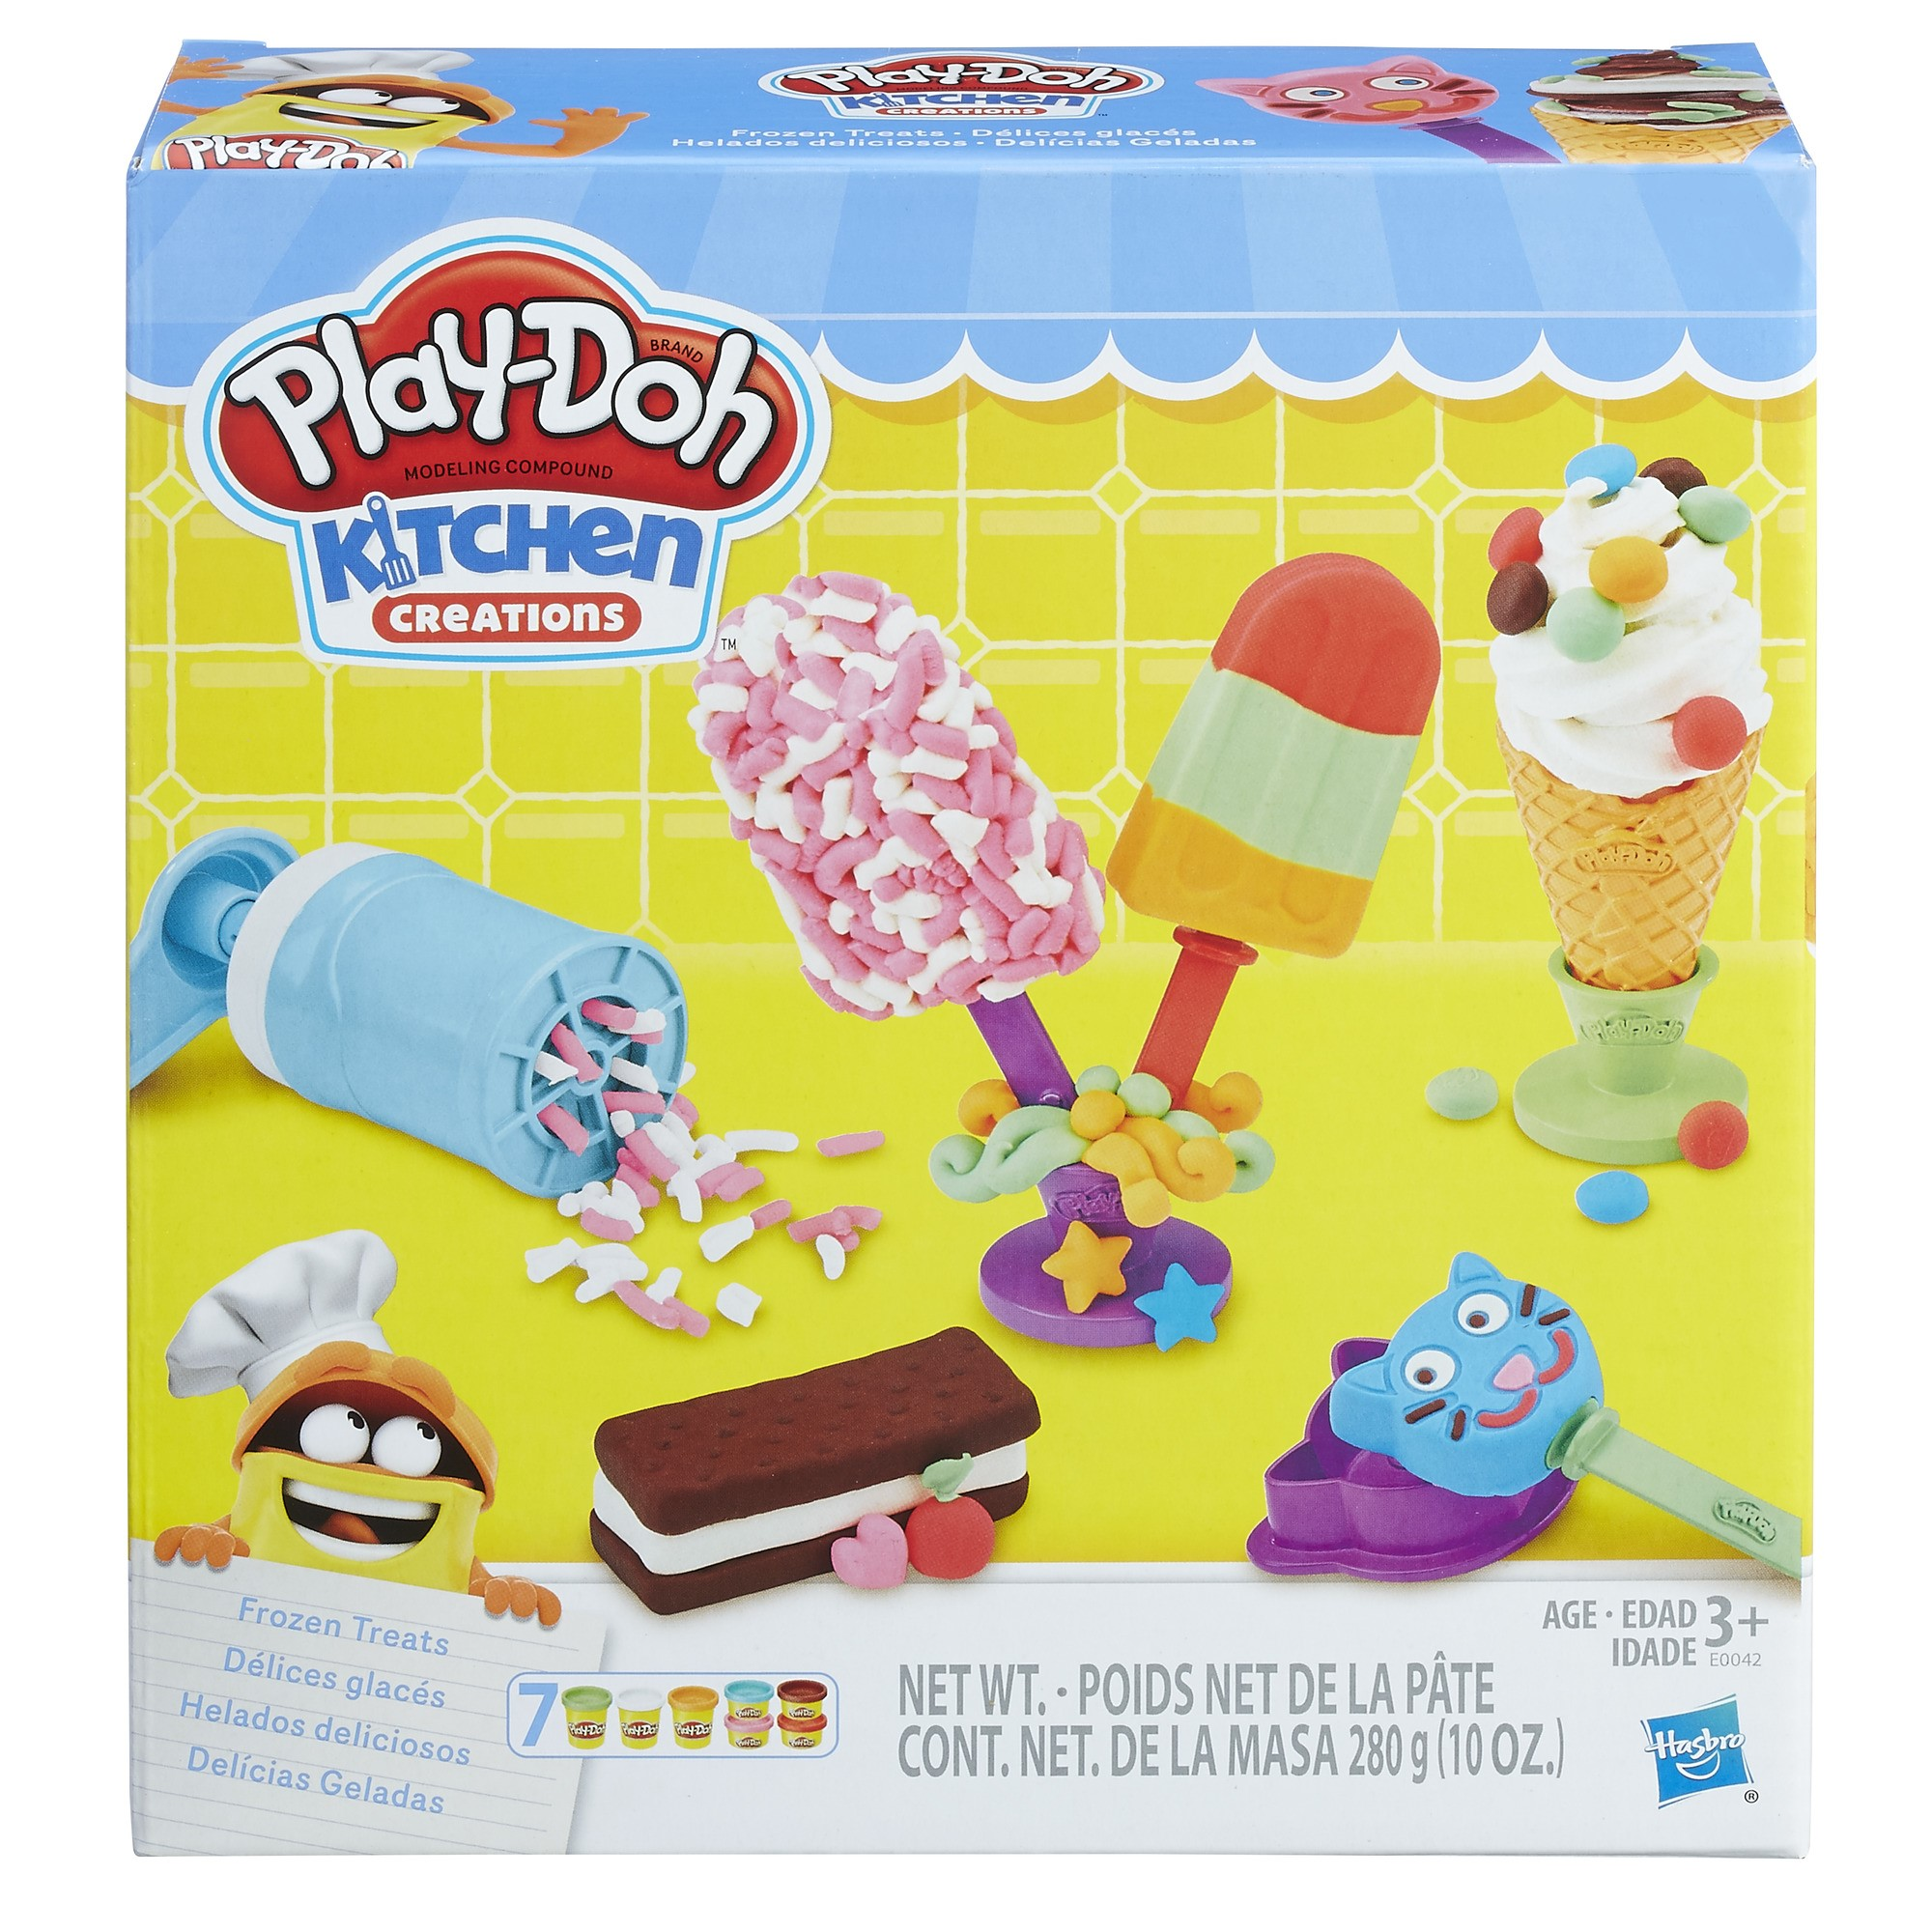 Play-Doh Kitchen Creations Frozen Treats Food Set